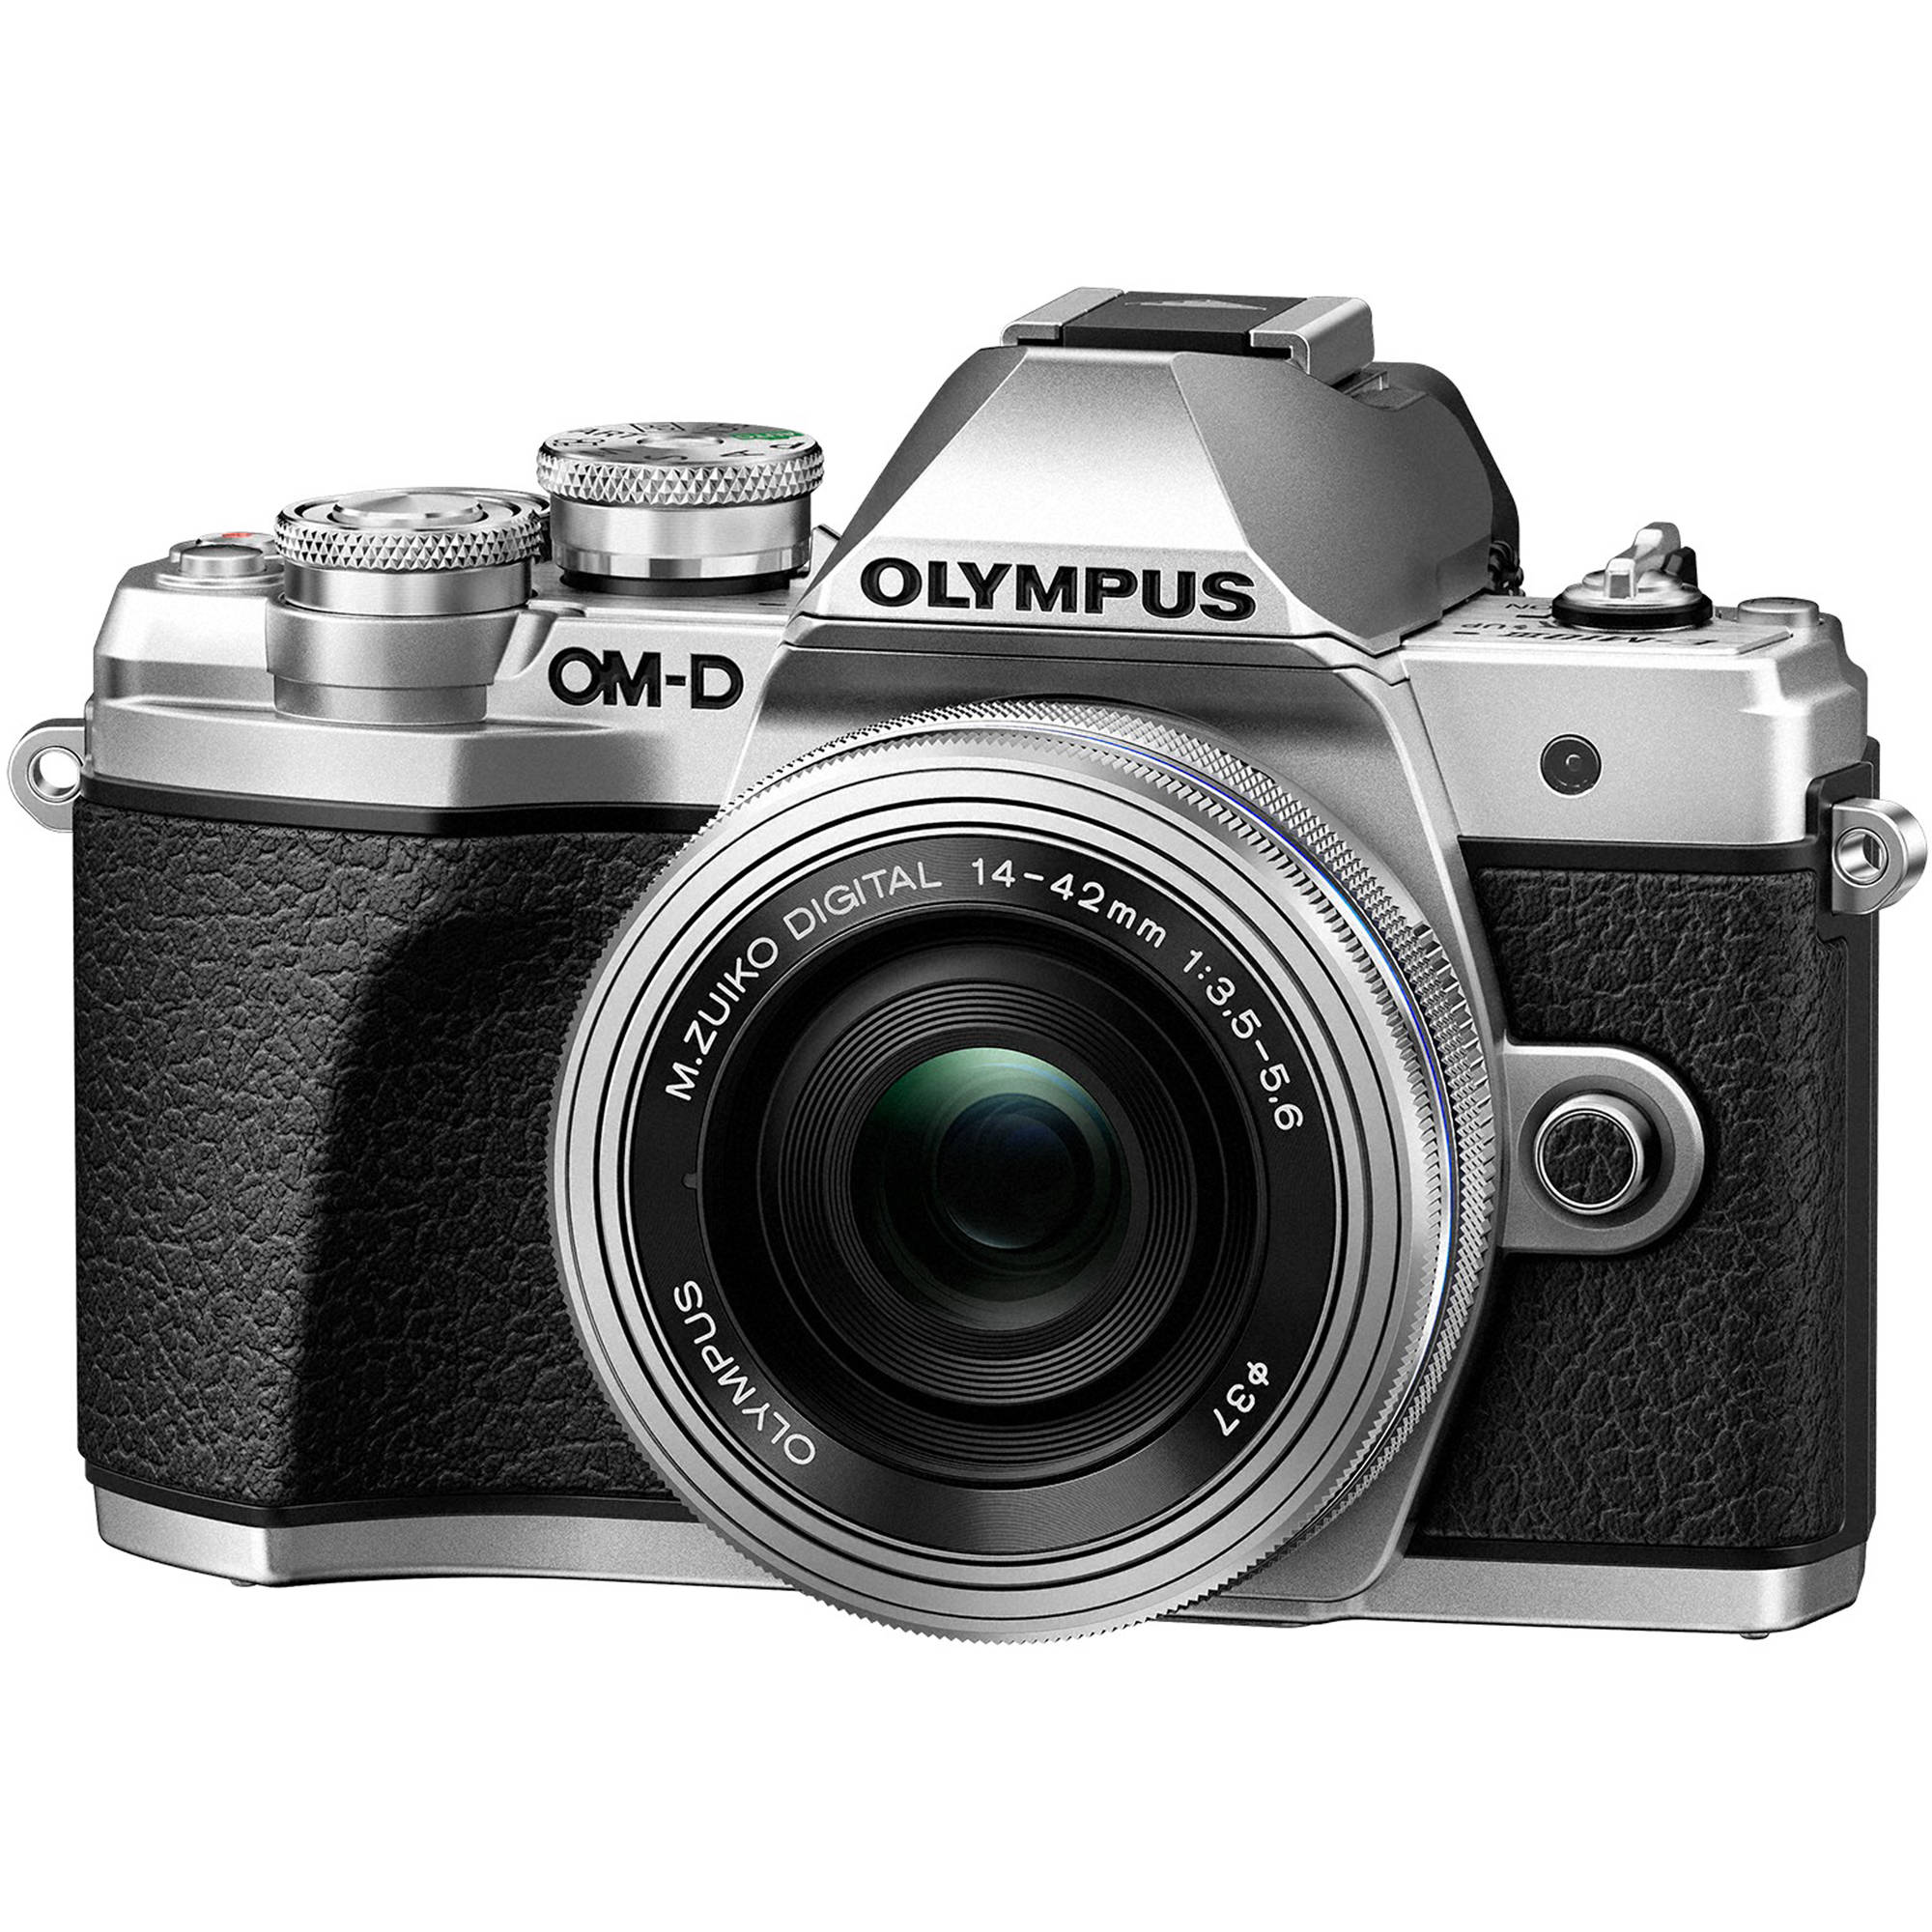 Olympus OM-D E-M10 Mark III Mirrorless Micro Four V207072SU010